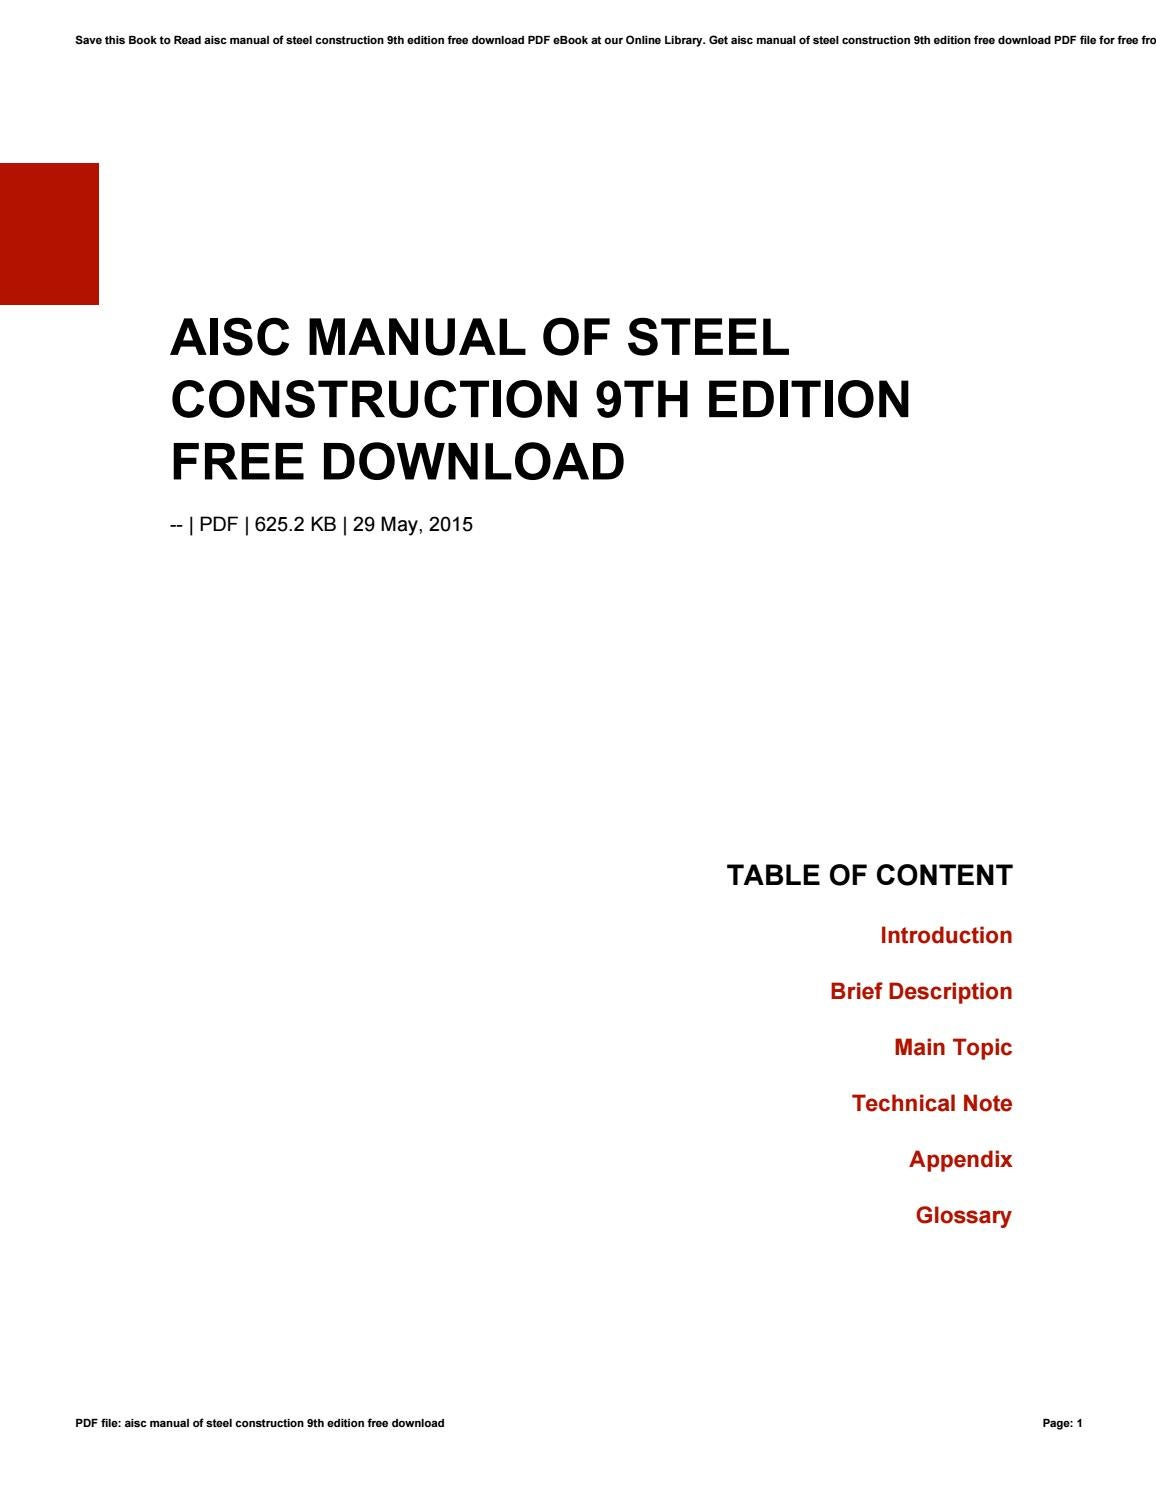 Aisc Manual Of Steel Construction 9th Edition Free